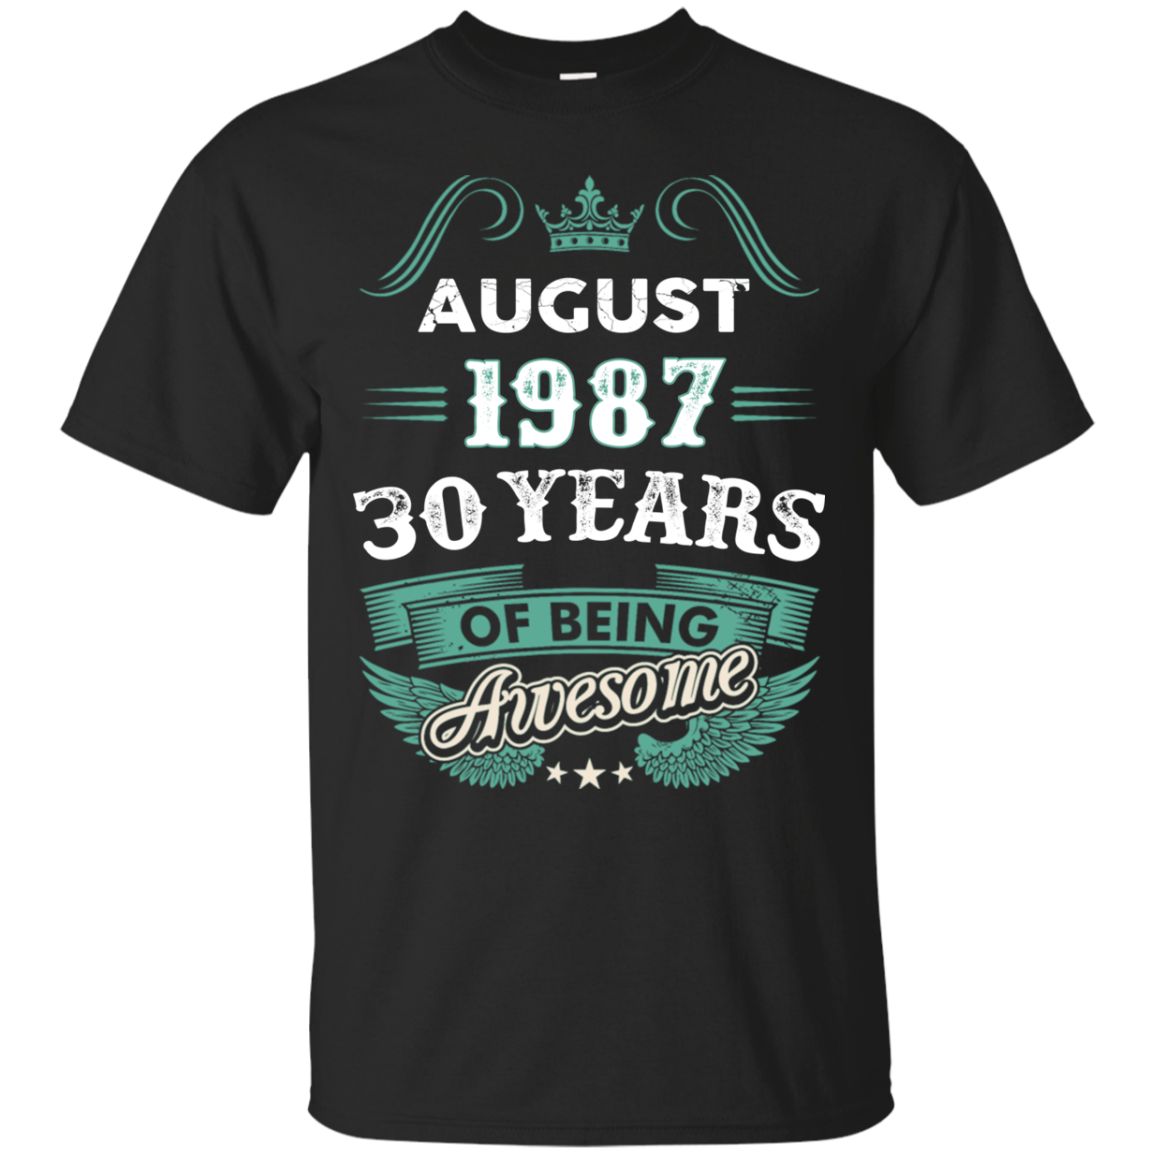 August 1987 30 Years of being Awesome t shirt Men